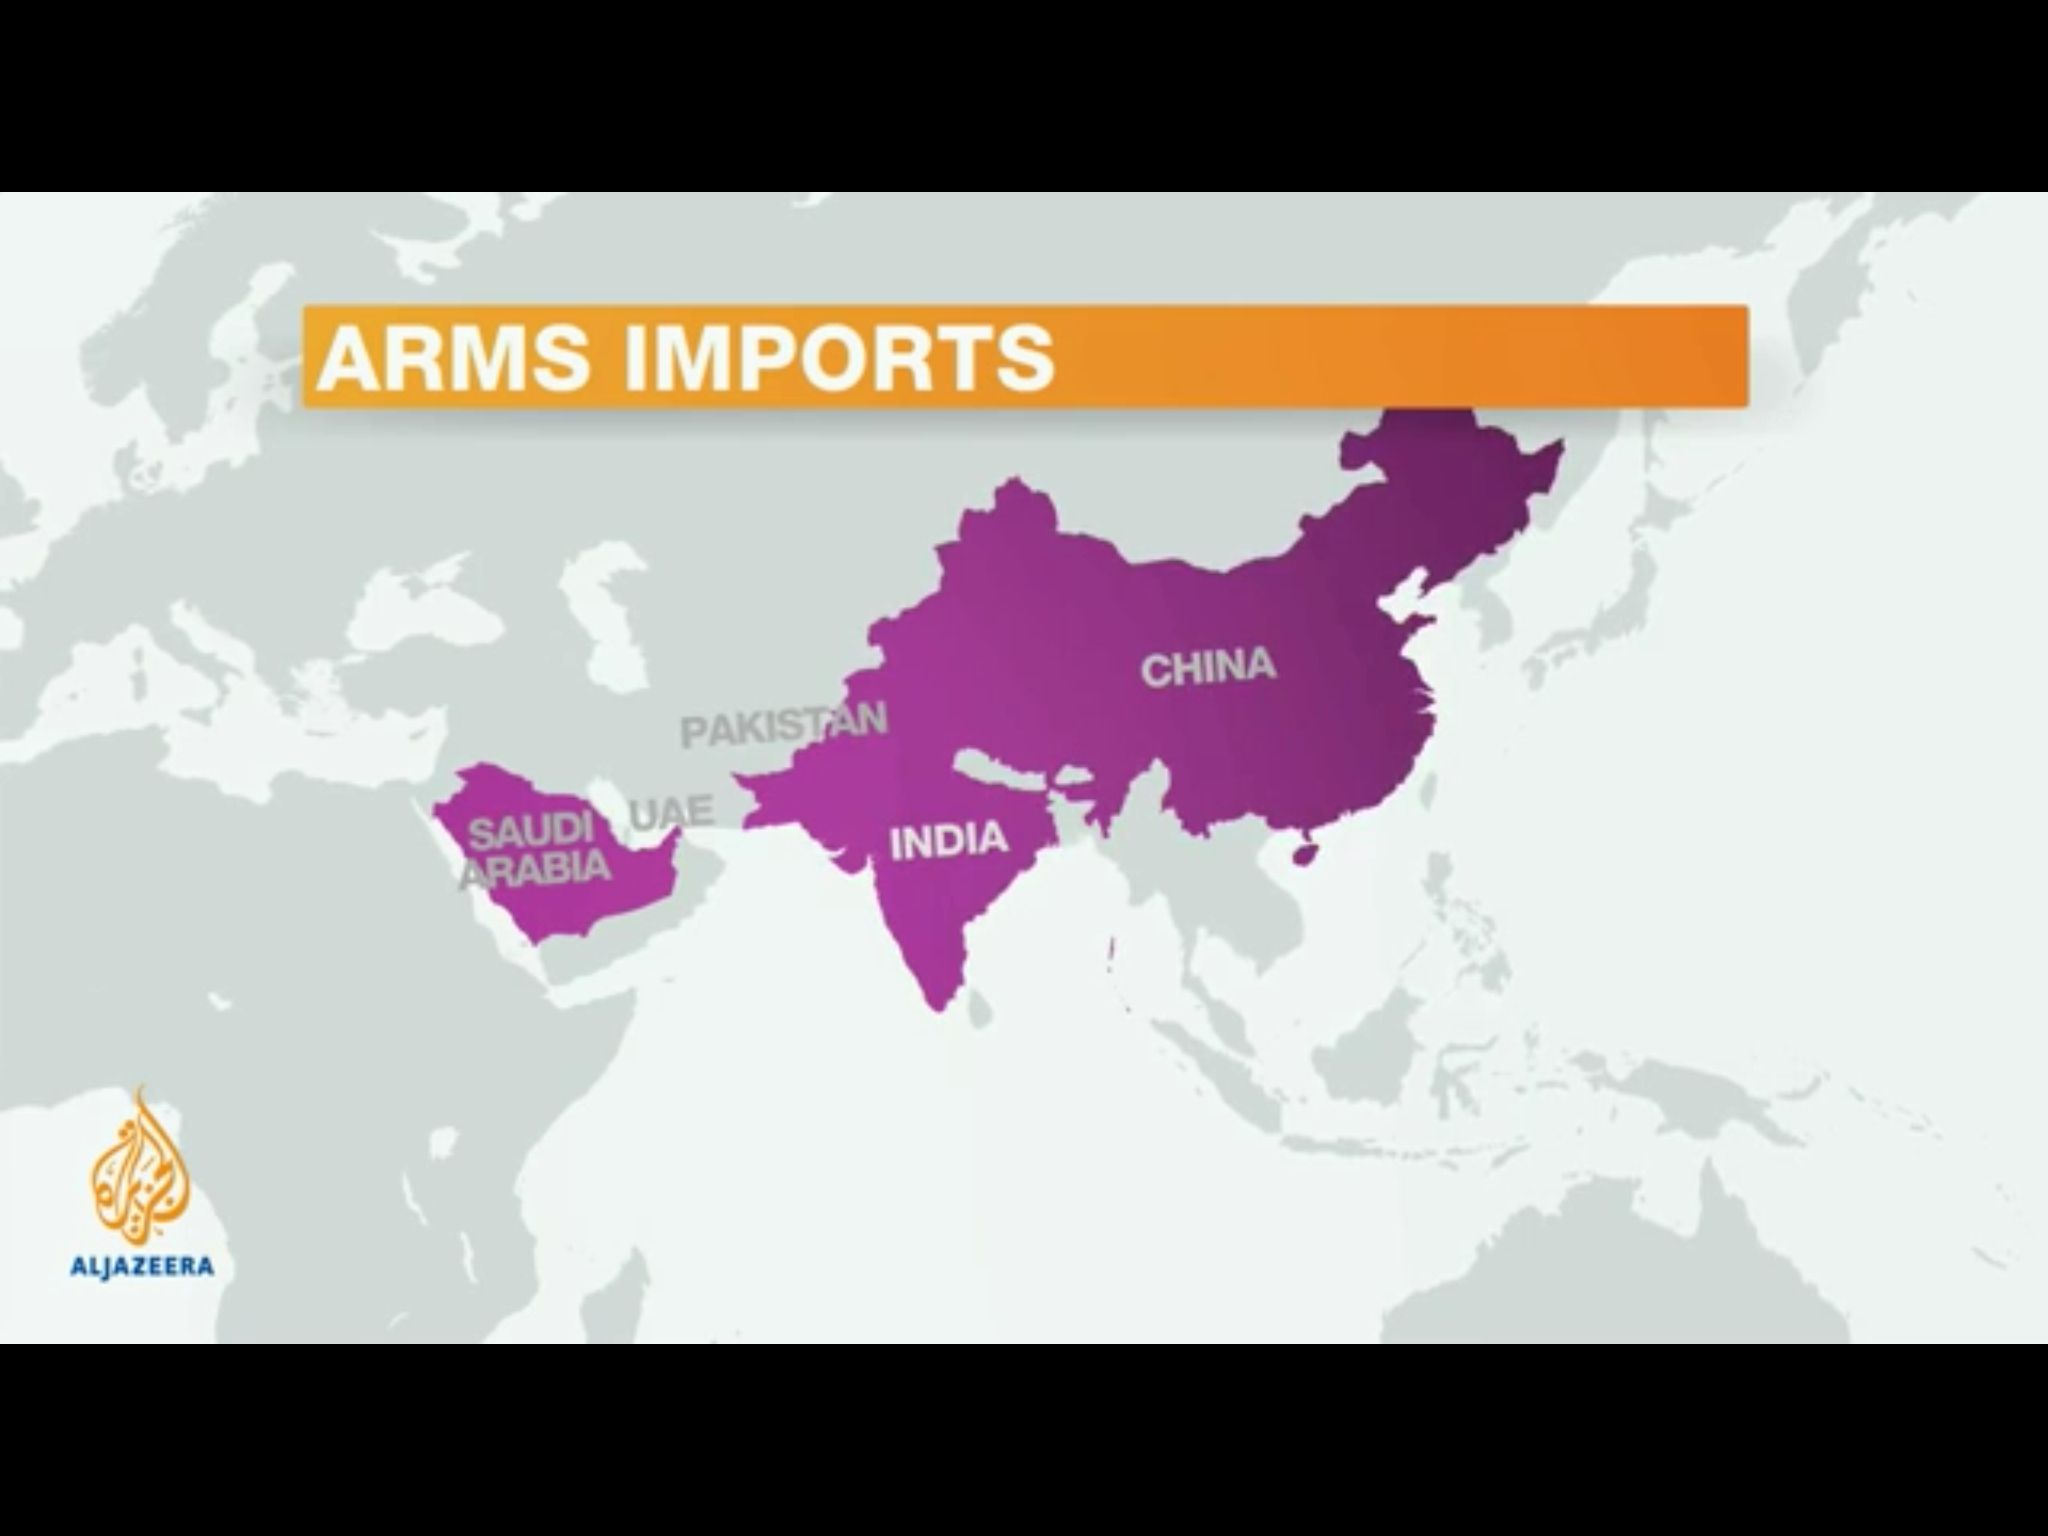 Top arms imports